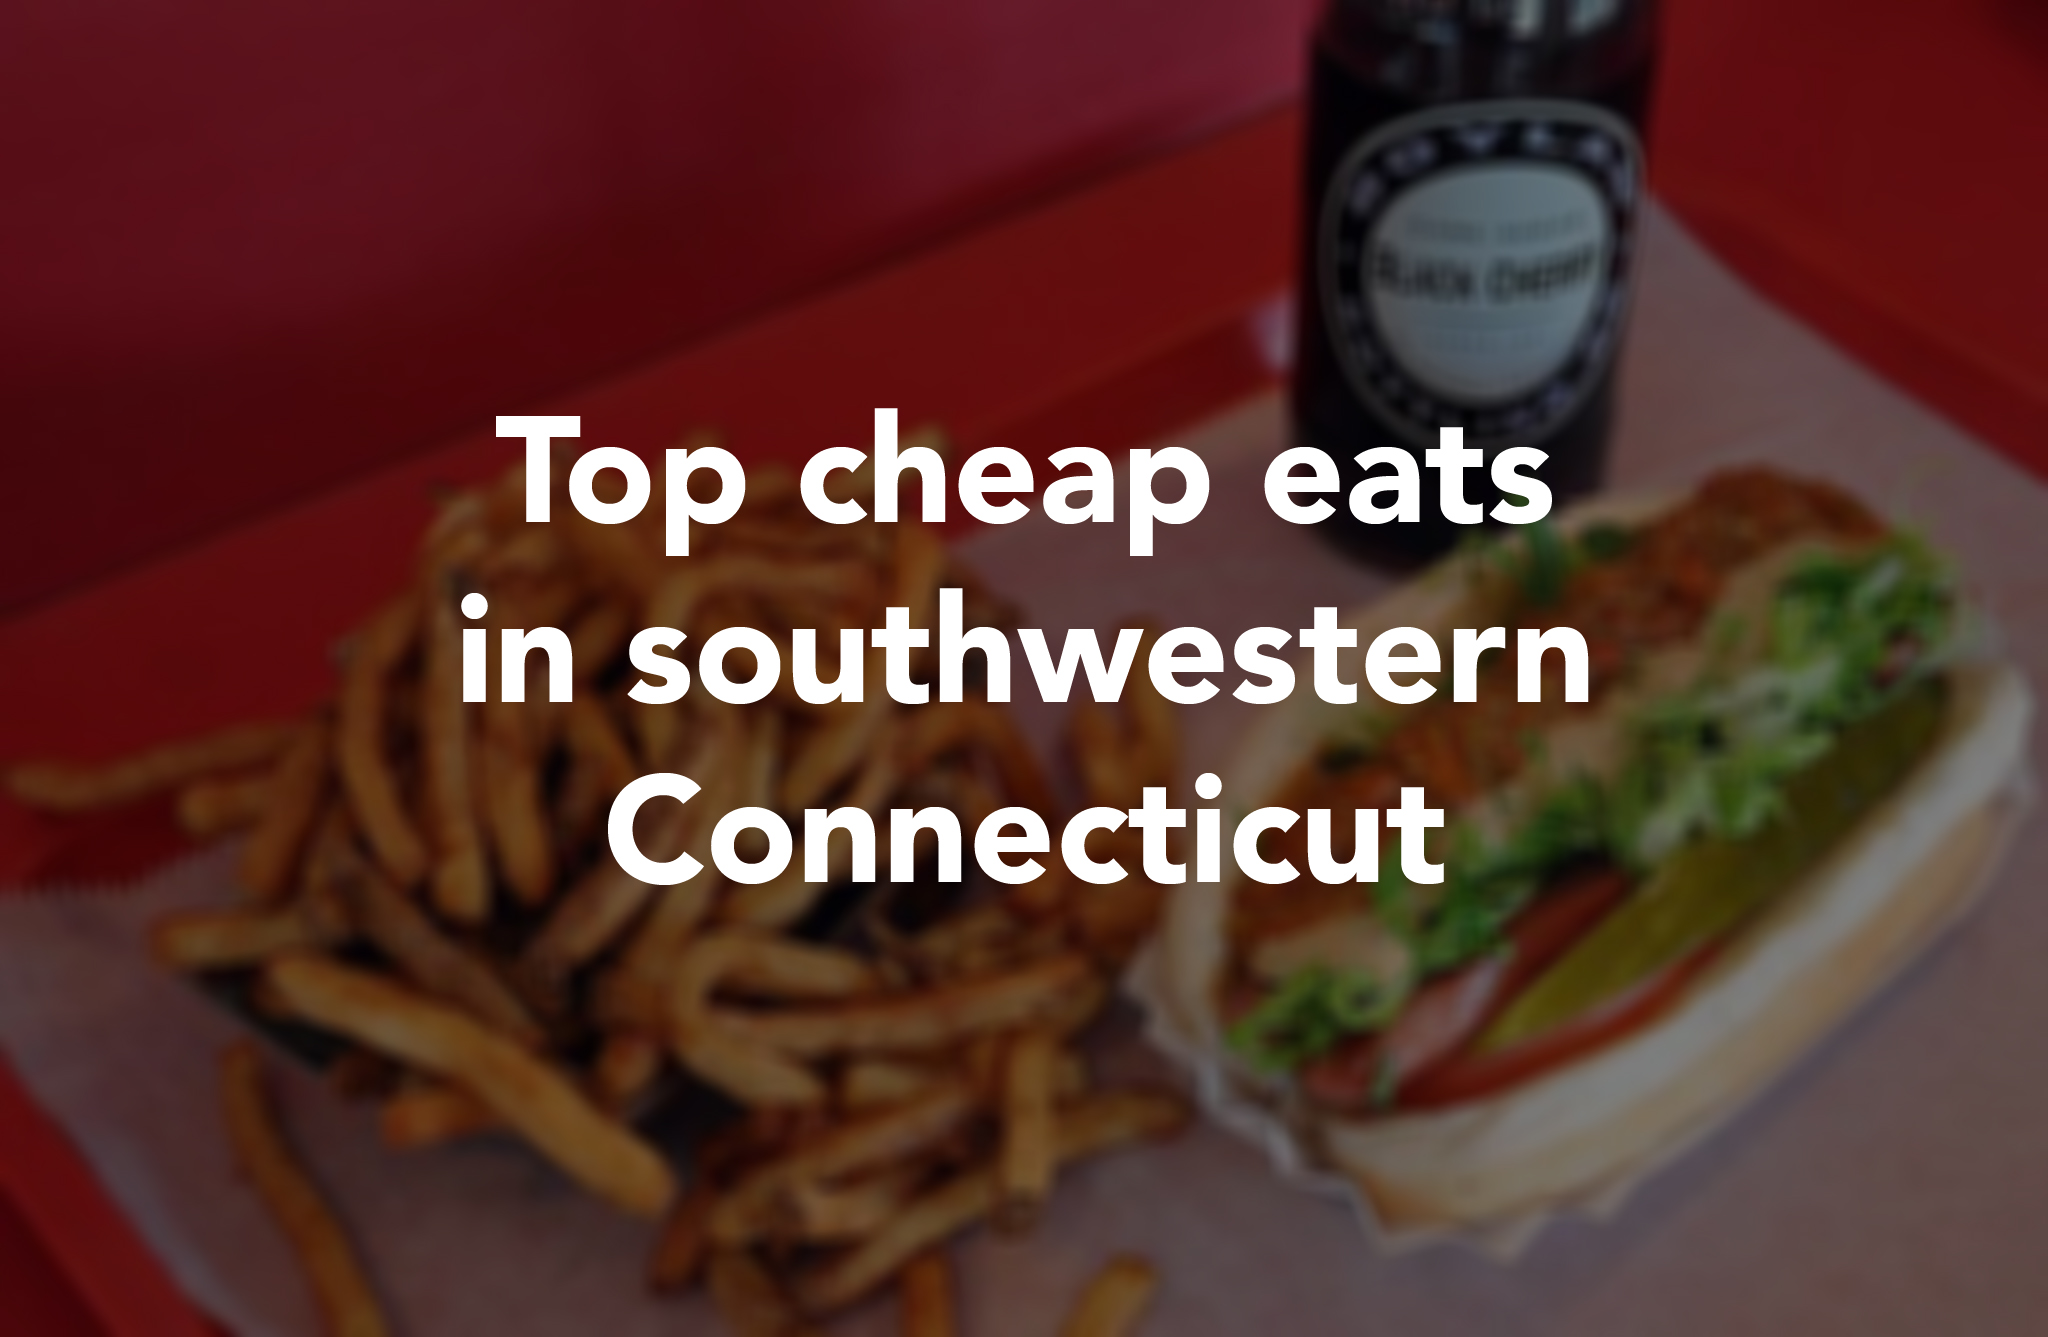 Where to find our favorite cheap eats in southwestern Connecticut ...